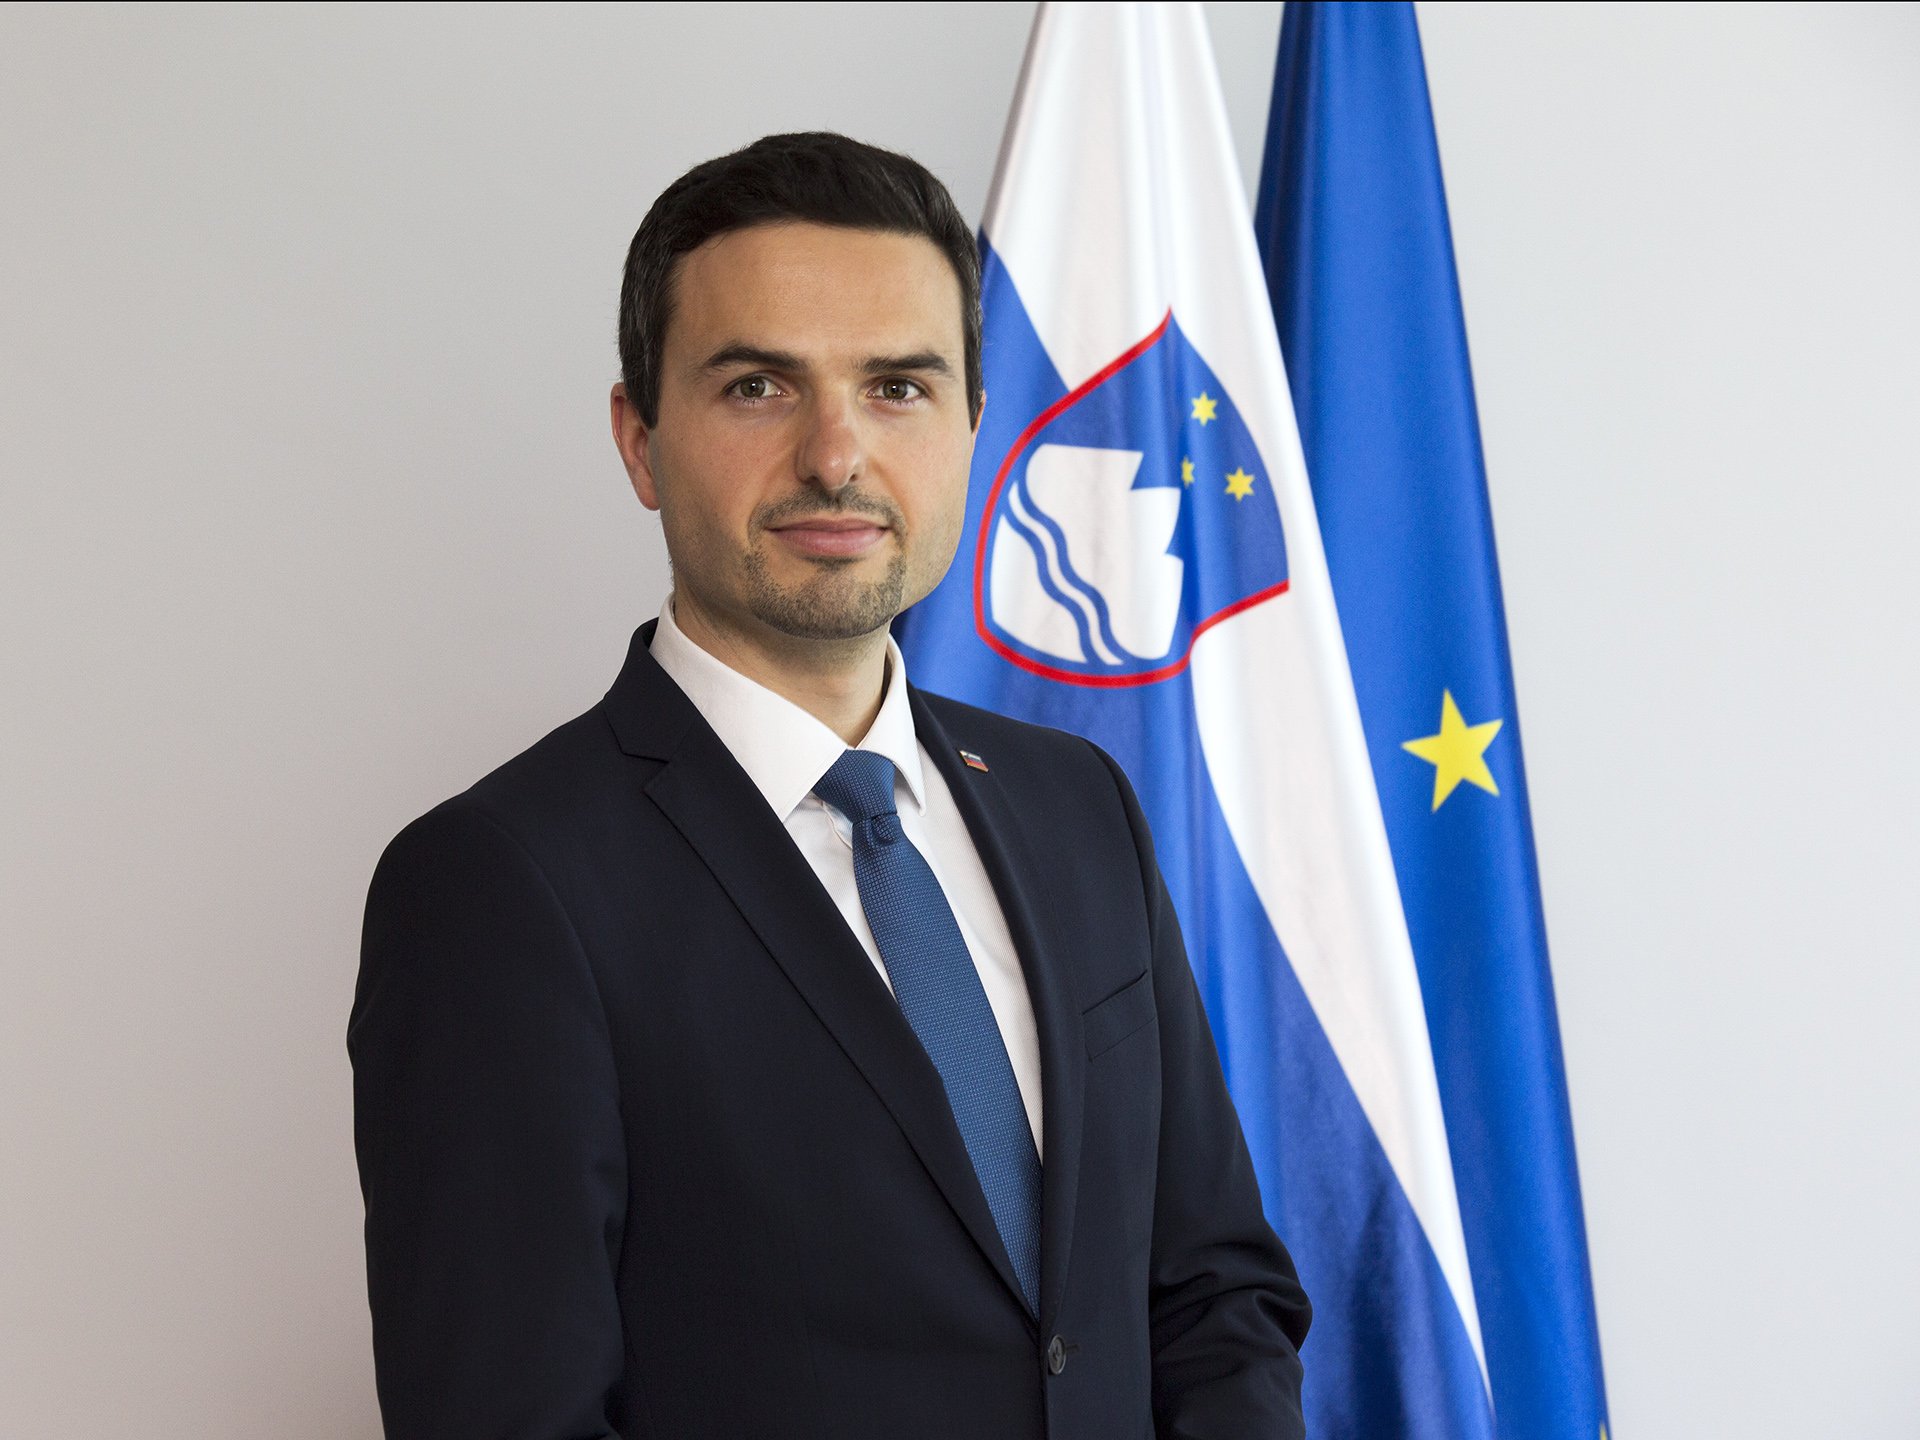 Slovenia: Minister Tonin had several meetings in Istanbul